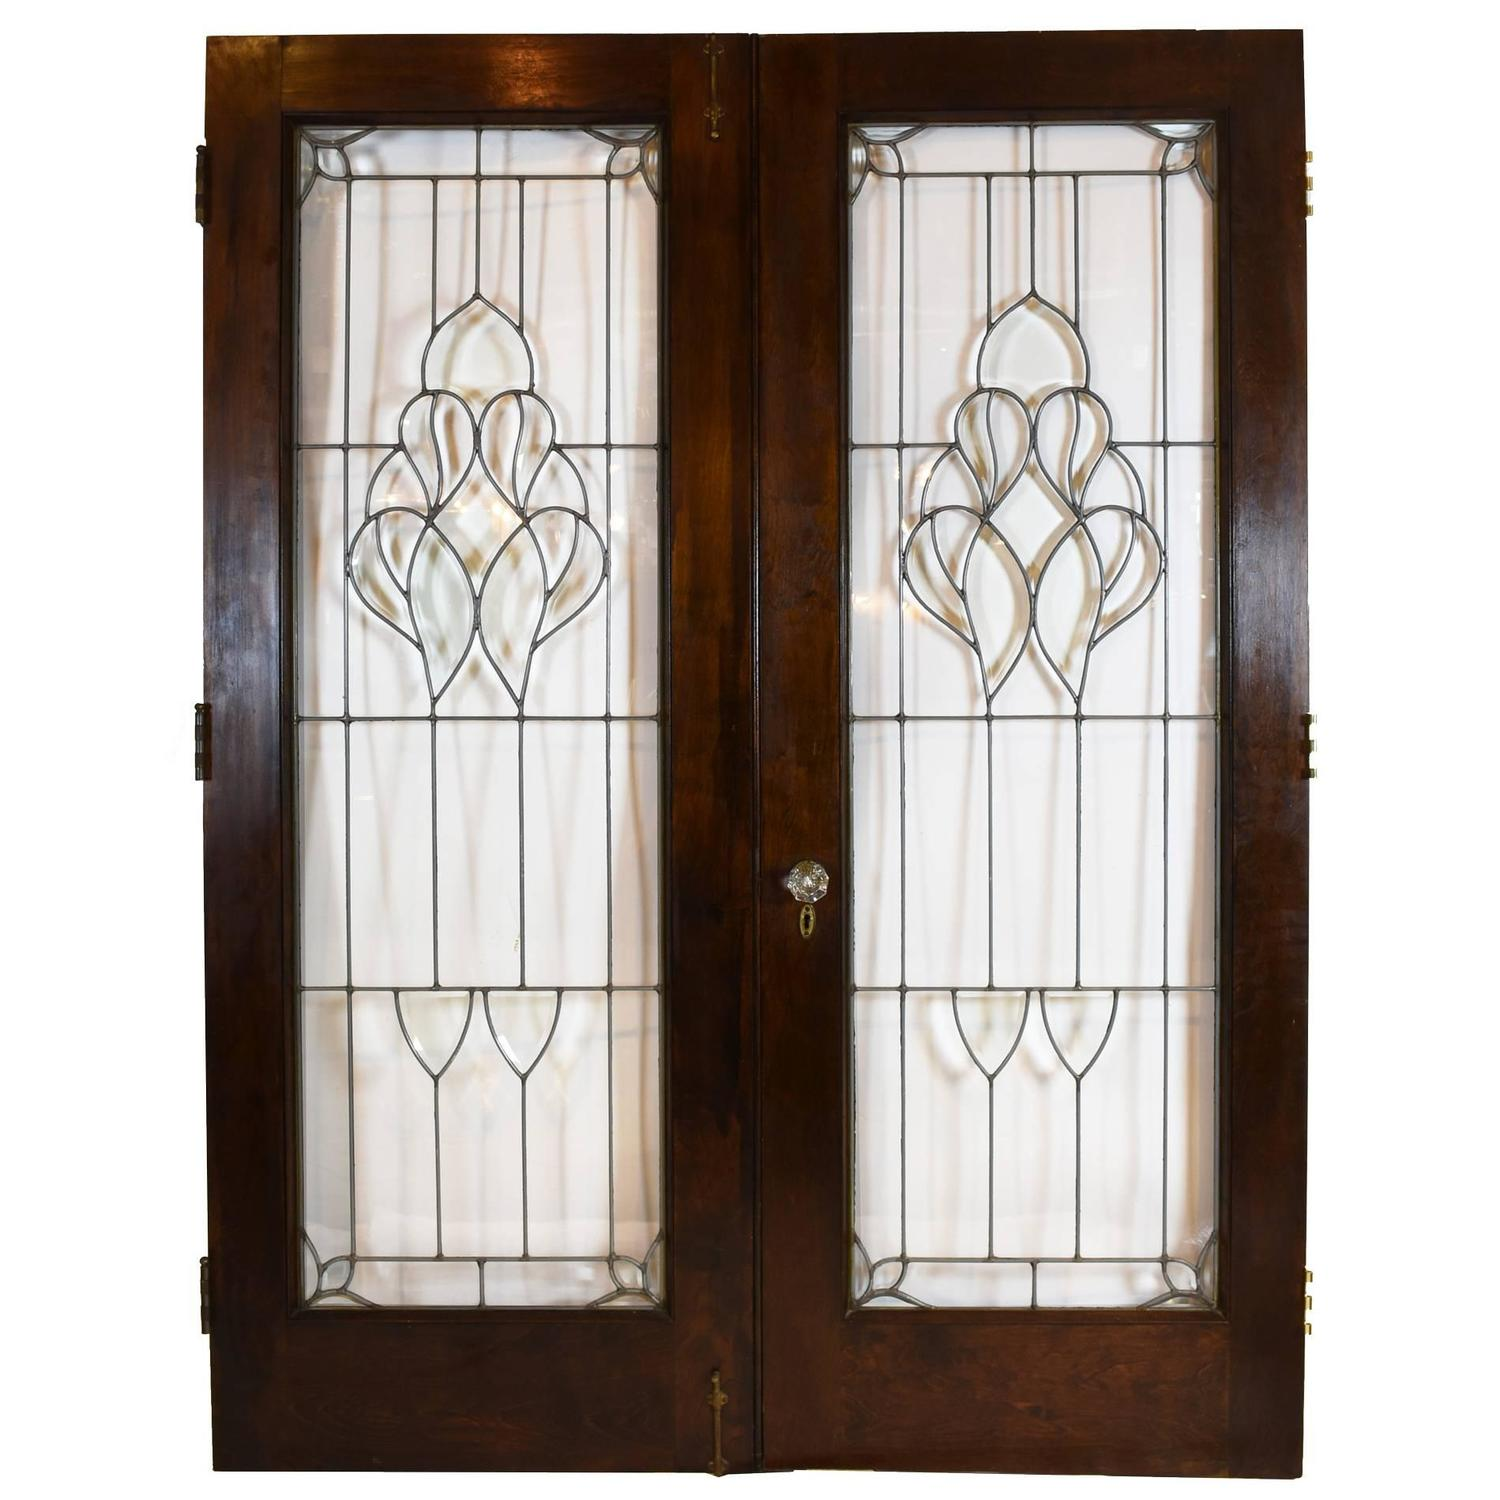 Arts and crafts beveled glass french door set at 1stdibs for Full glass french doors